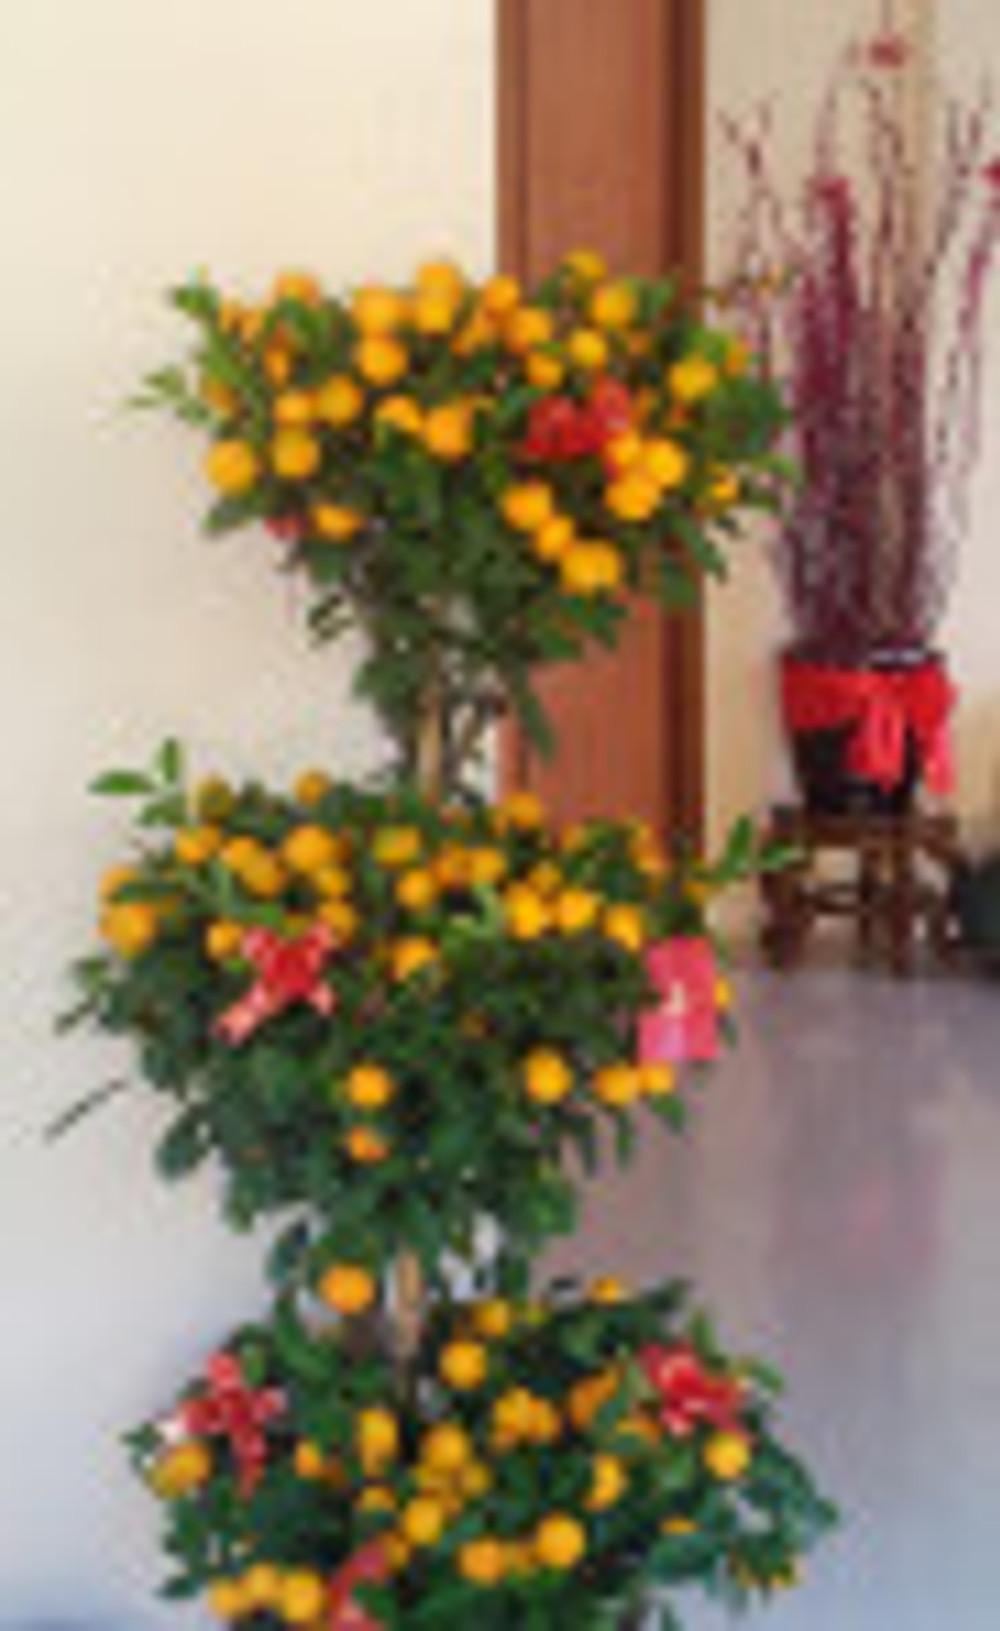 Bountiful kumquats, rooted willows